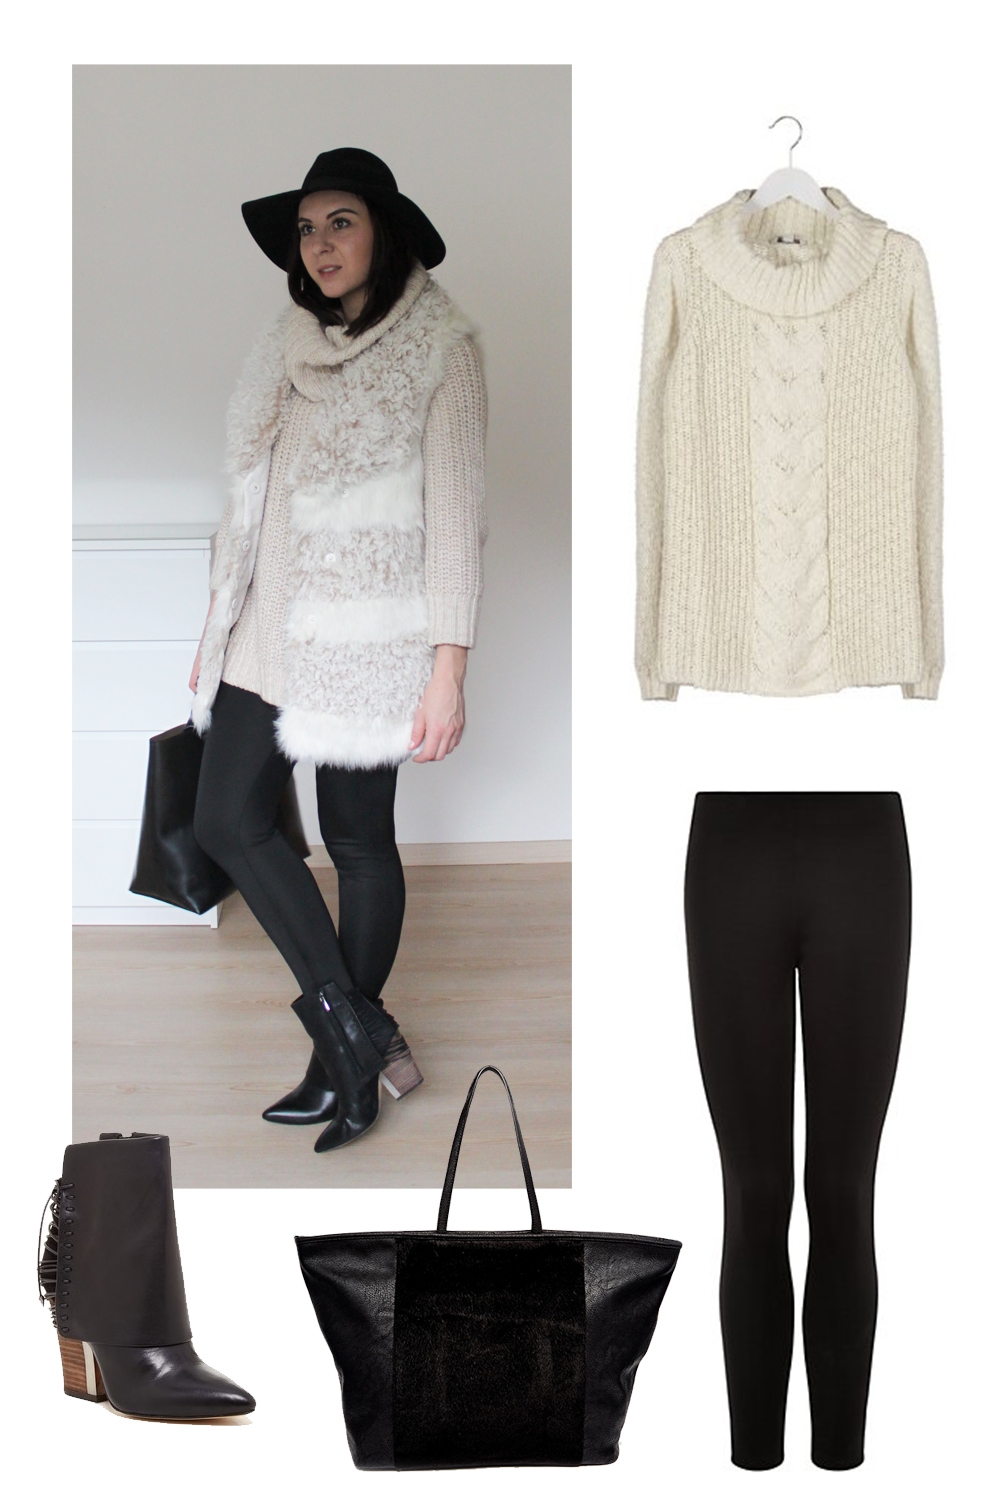 fake fur weste H&M, sam edelman martina boots schwarz, rollkragen pullover beige, scuba neopren leggings new look, shopper & other stories